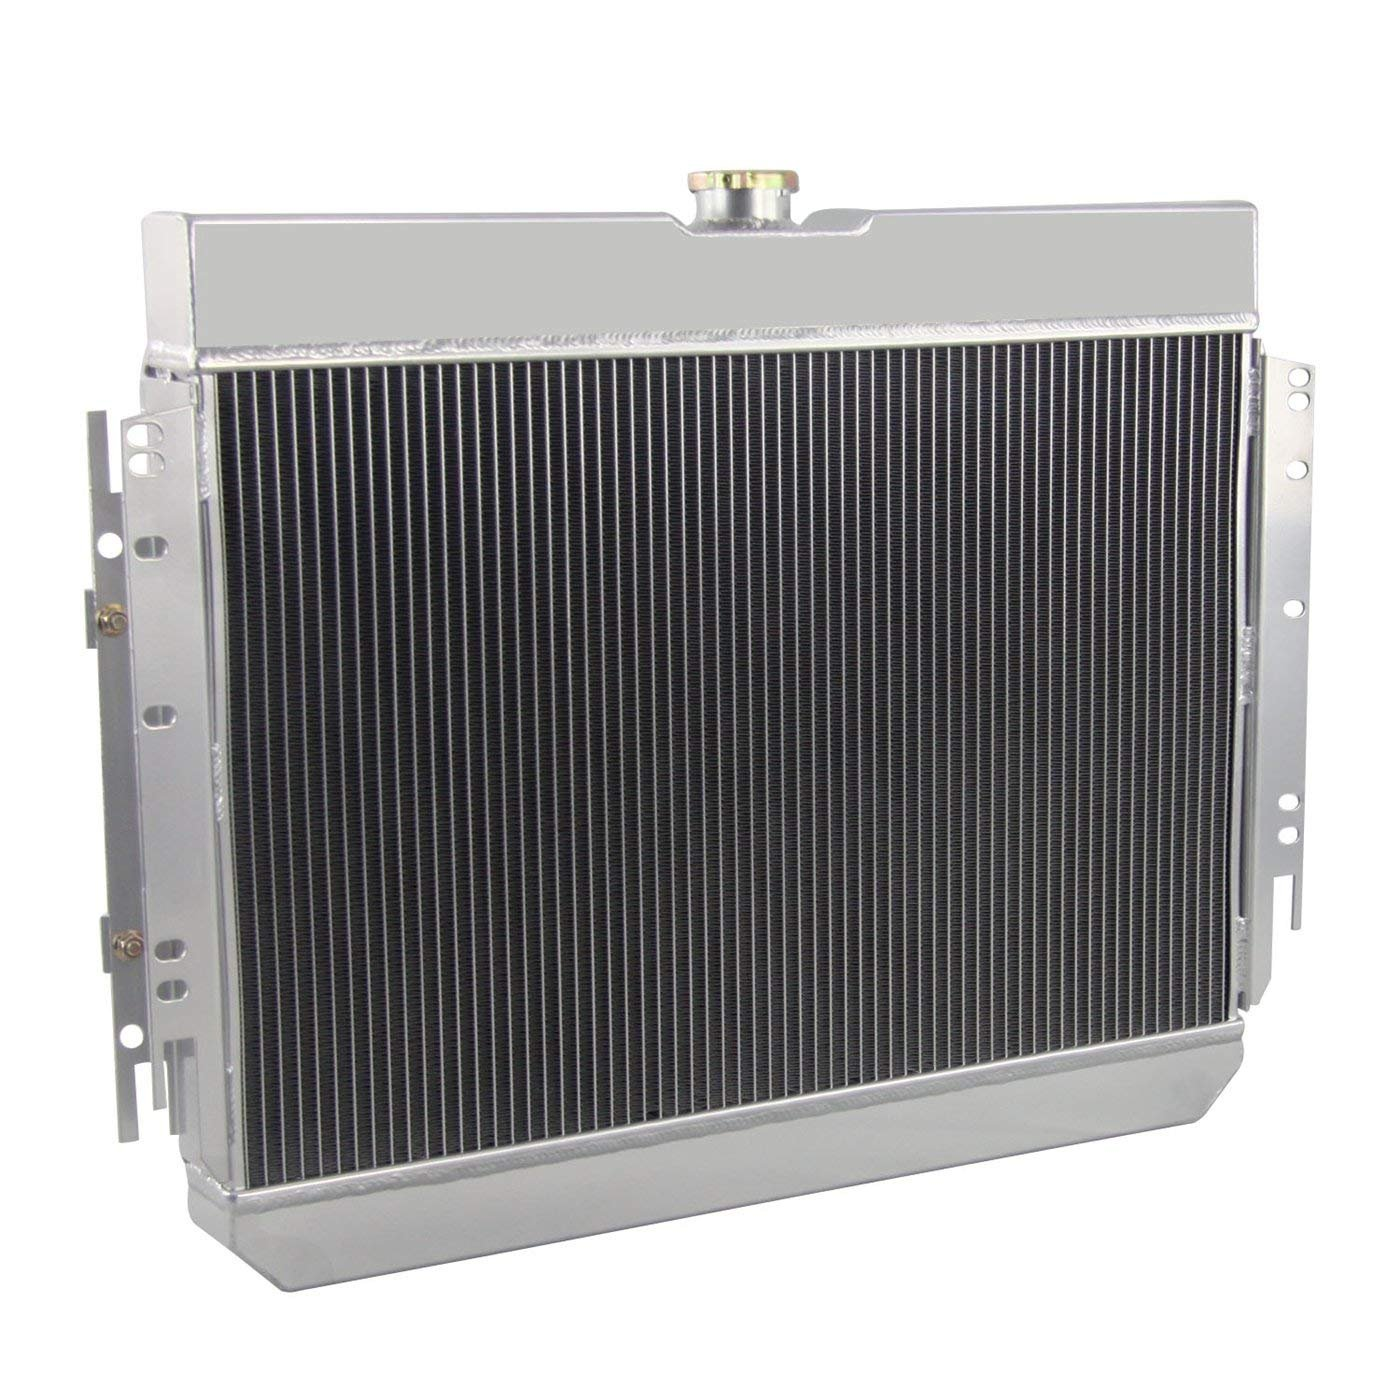 Primecooling 56mm 3 Row Core Aluminum Radiator For 1966 Chevrolet Bel Air Impala Chevelle Many Chevy Gm Gars 1963 68 Automotive